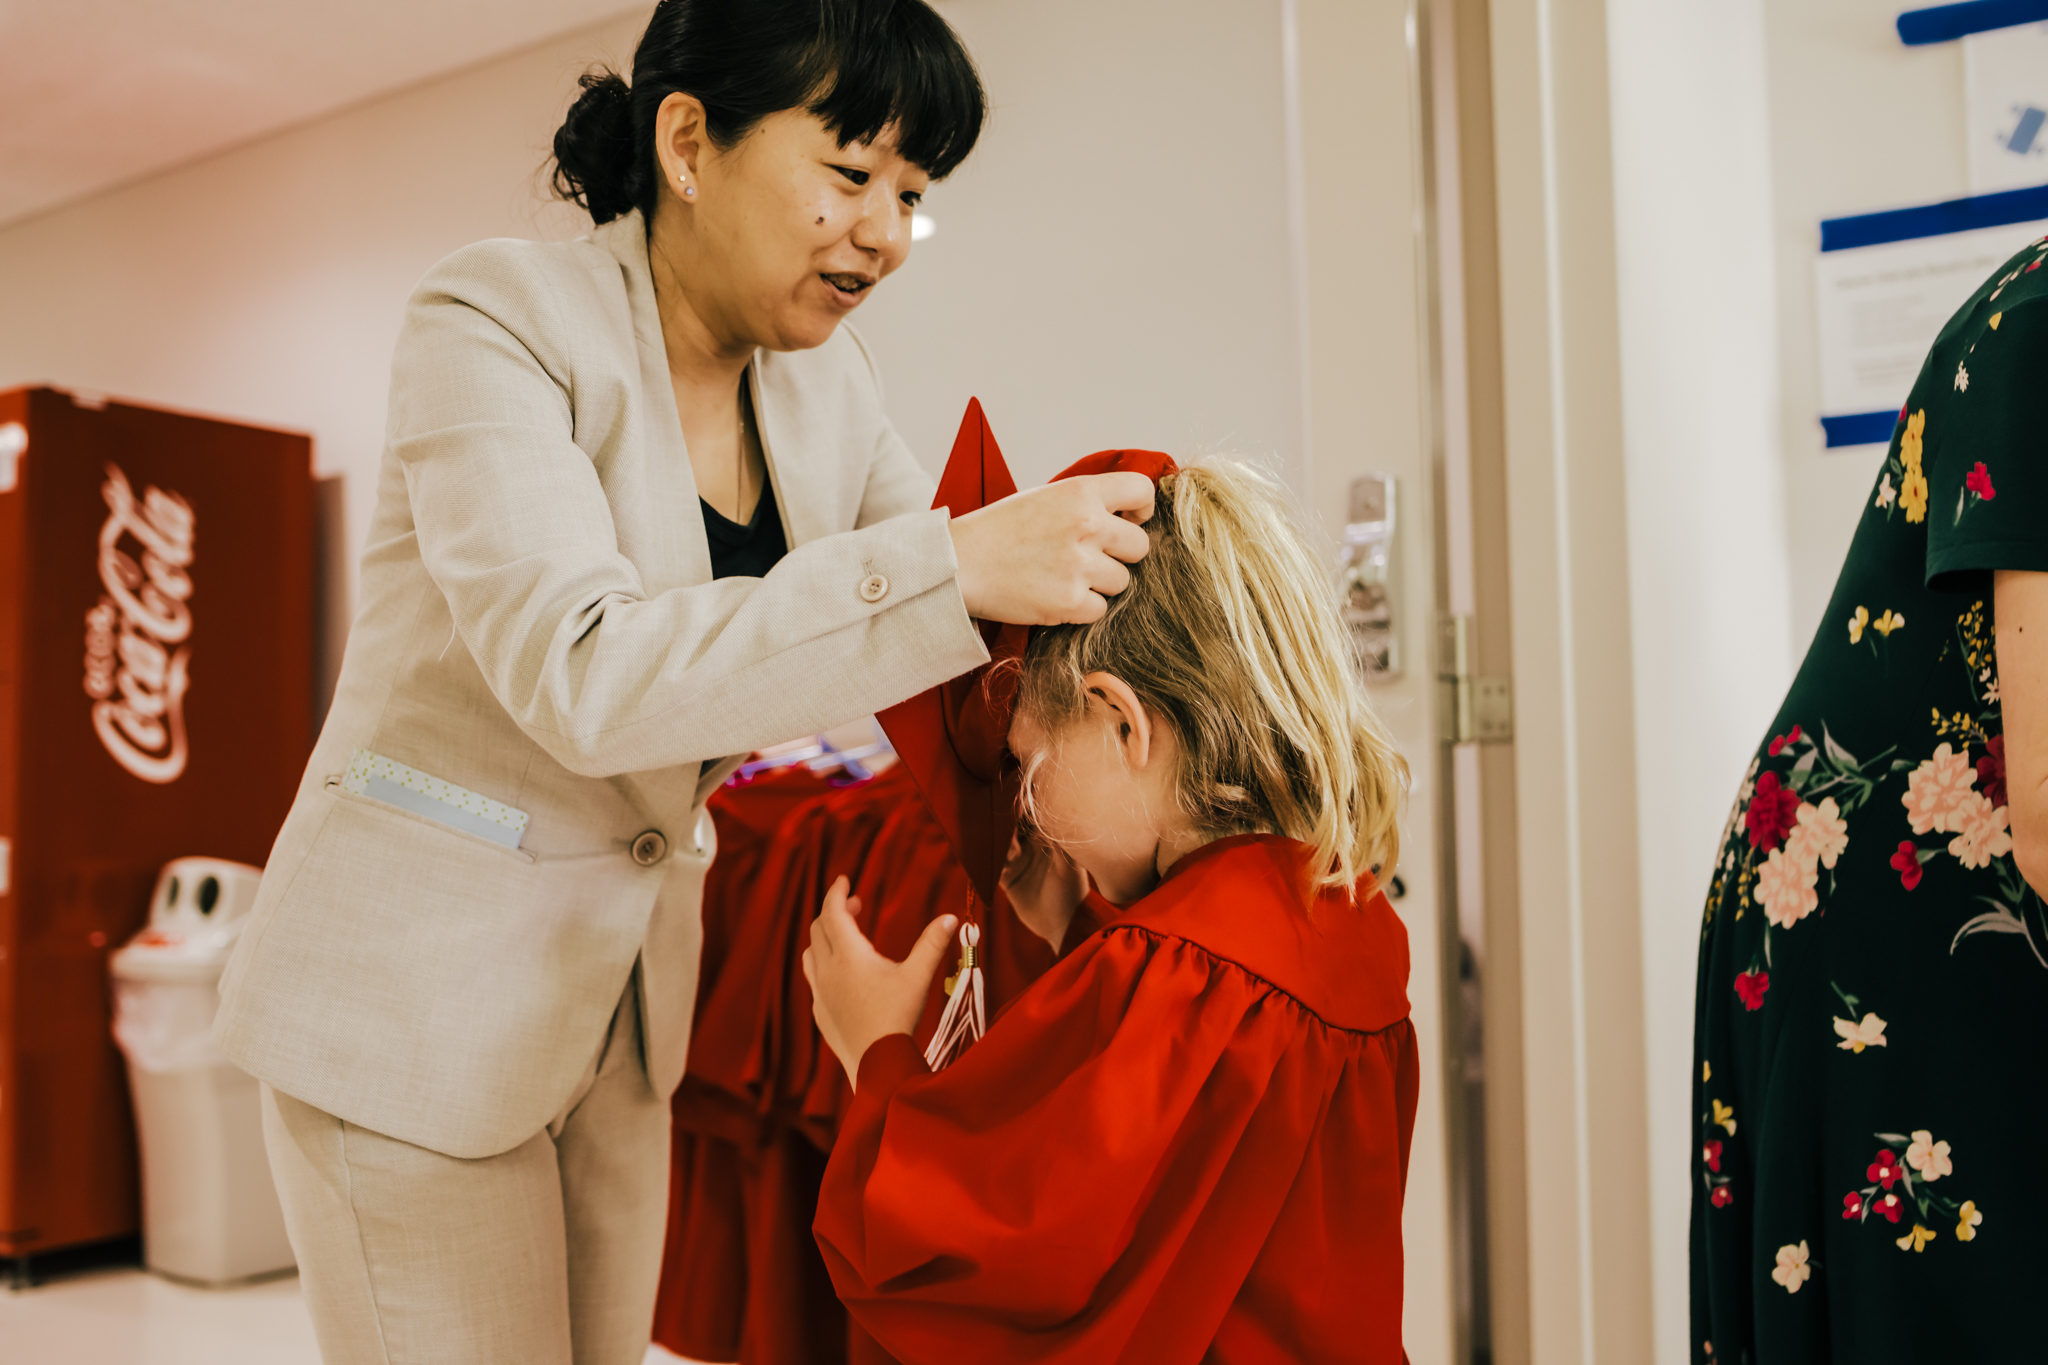 Abigail's sweet teacher helping her get dress in her cap and gown